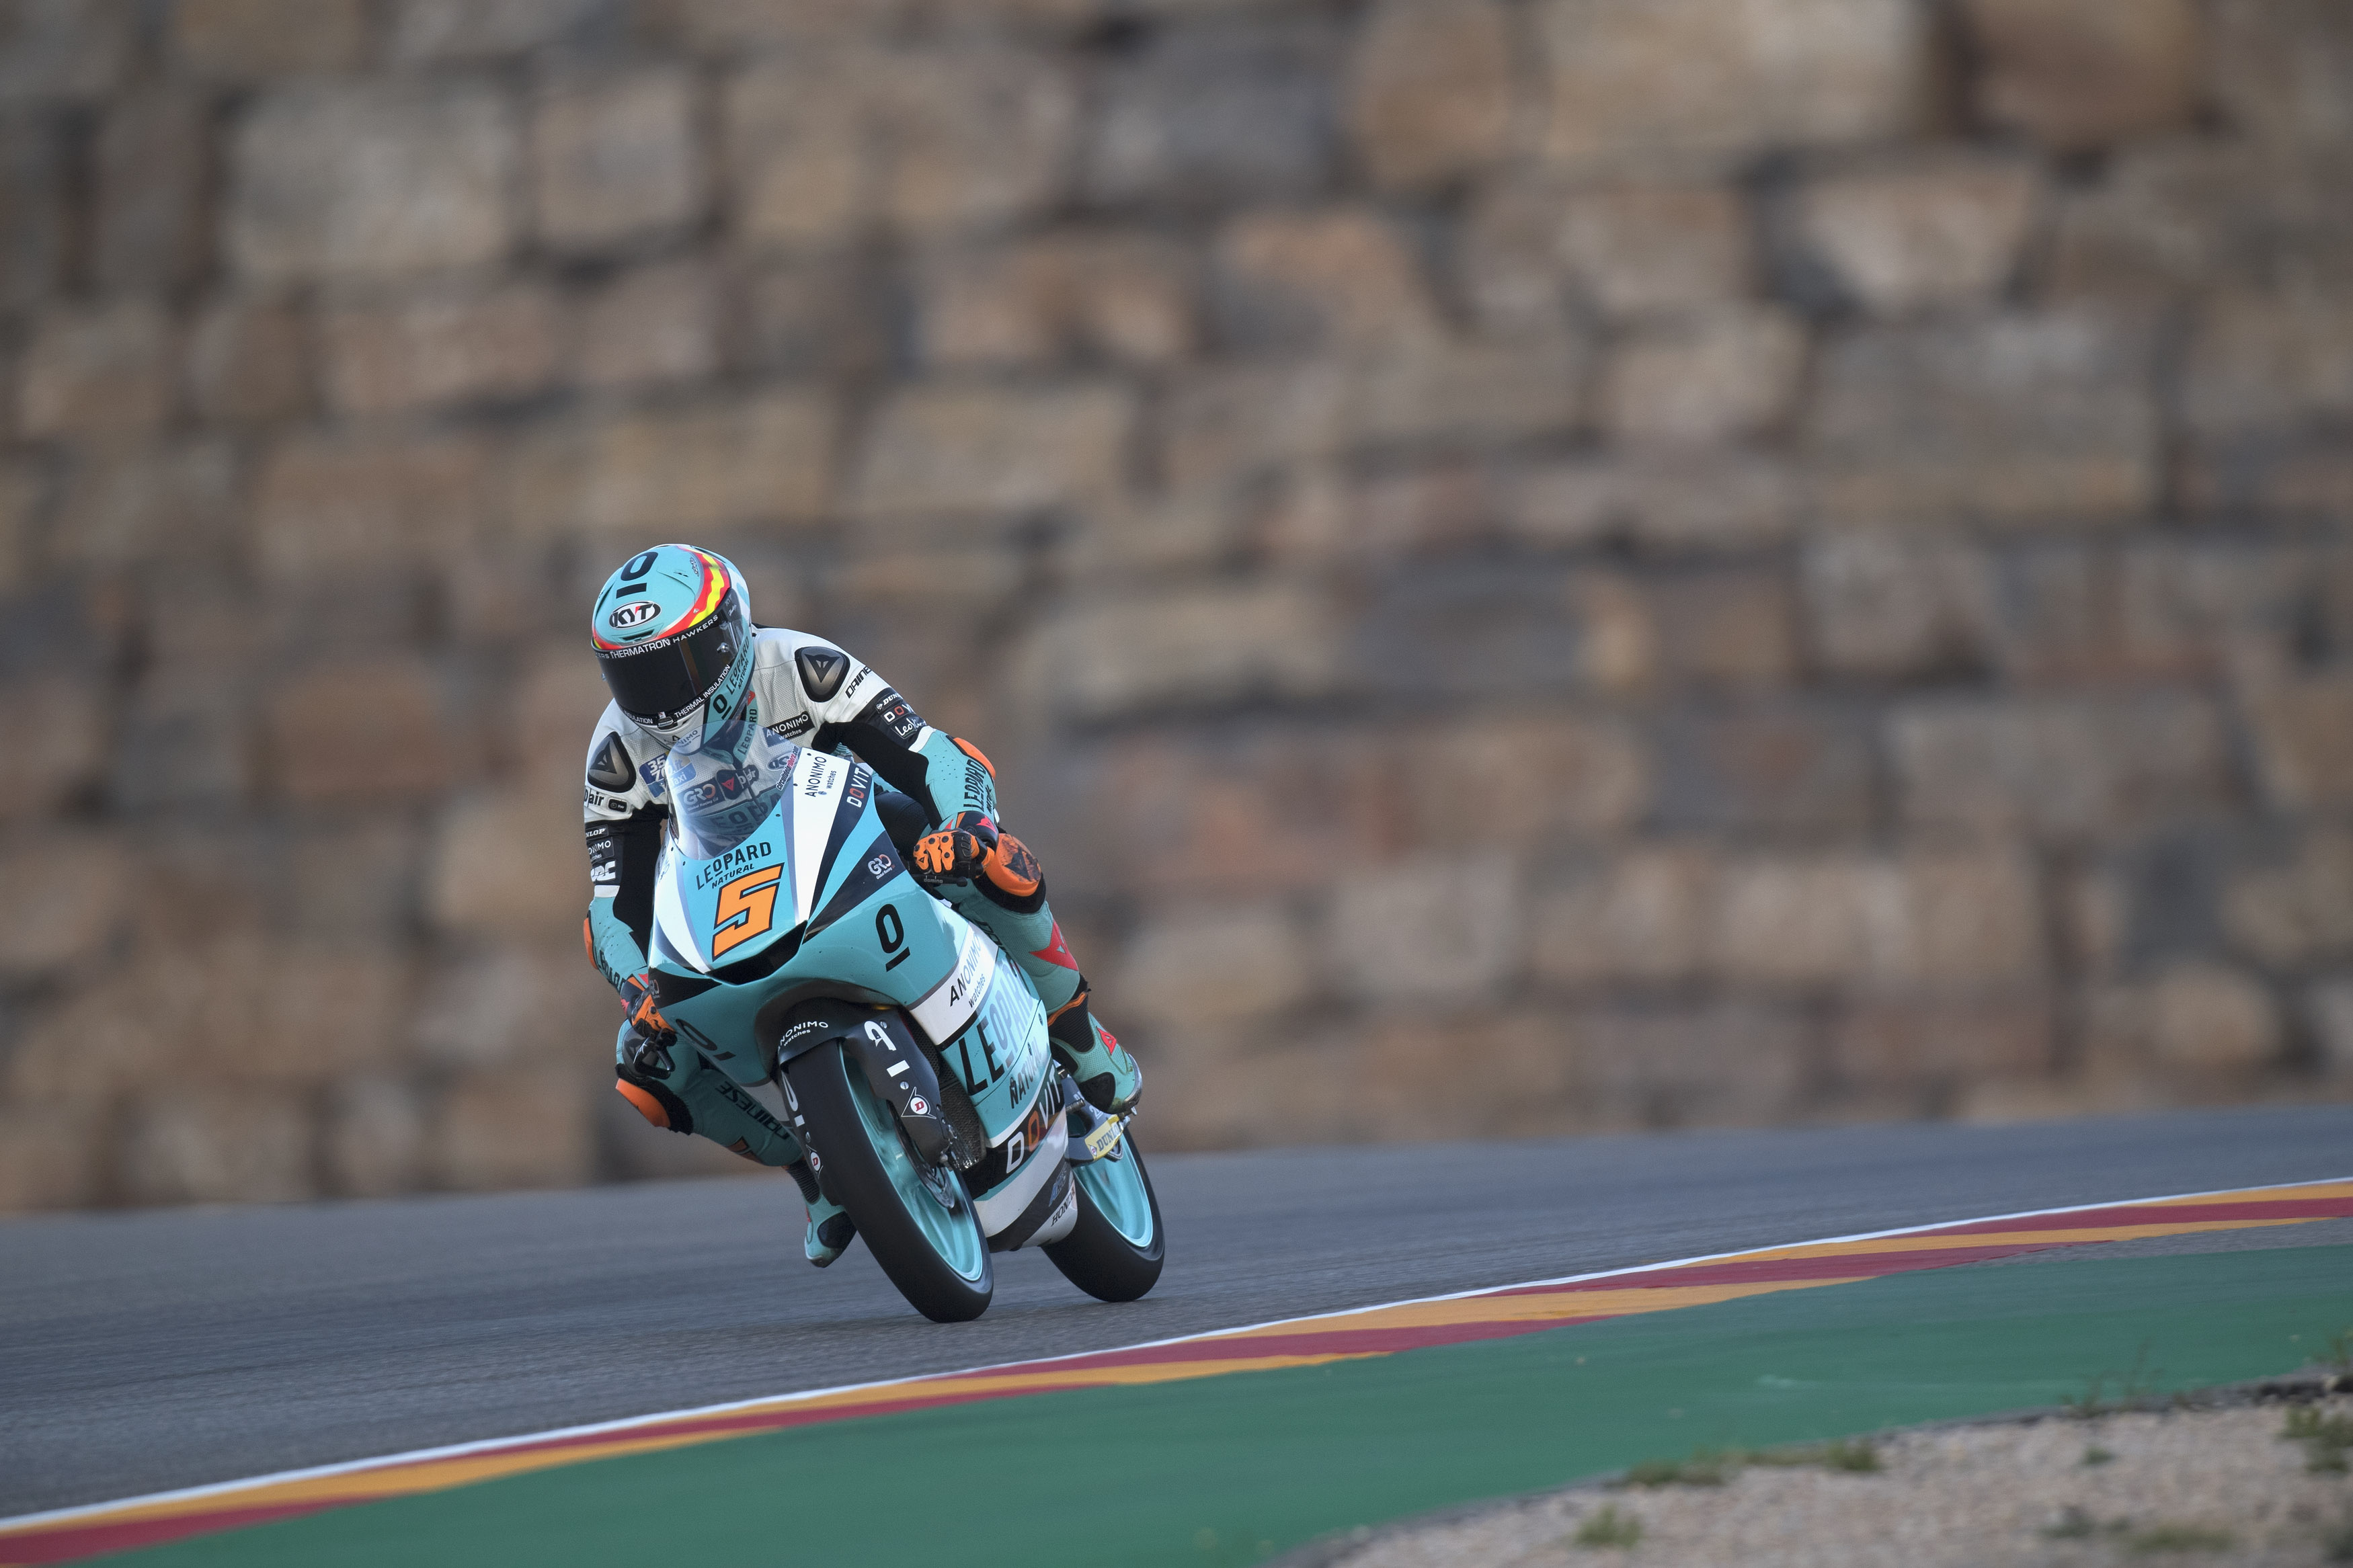 Grand Prix of Aragon 2020